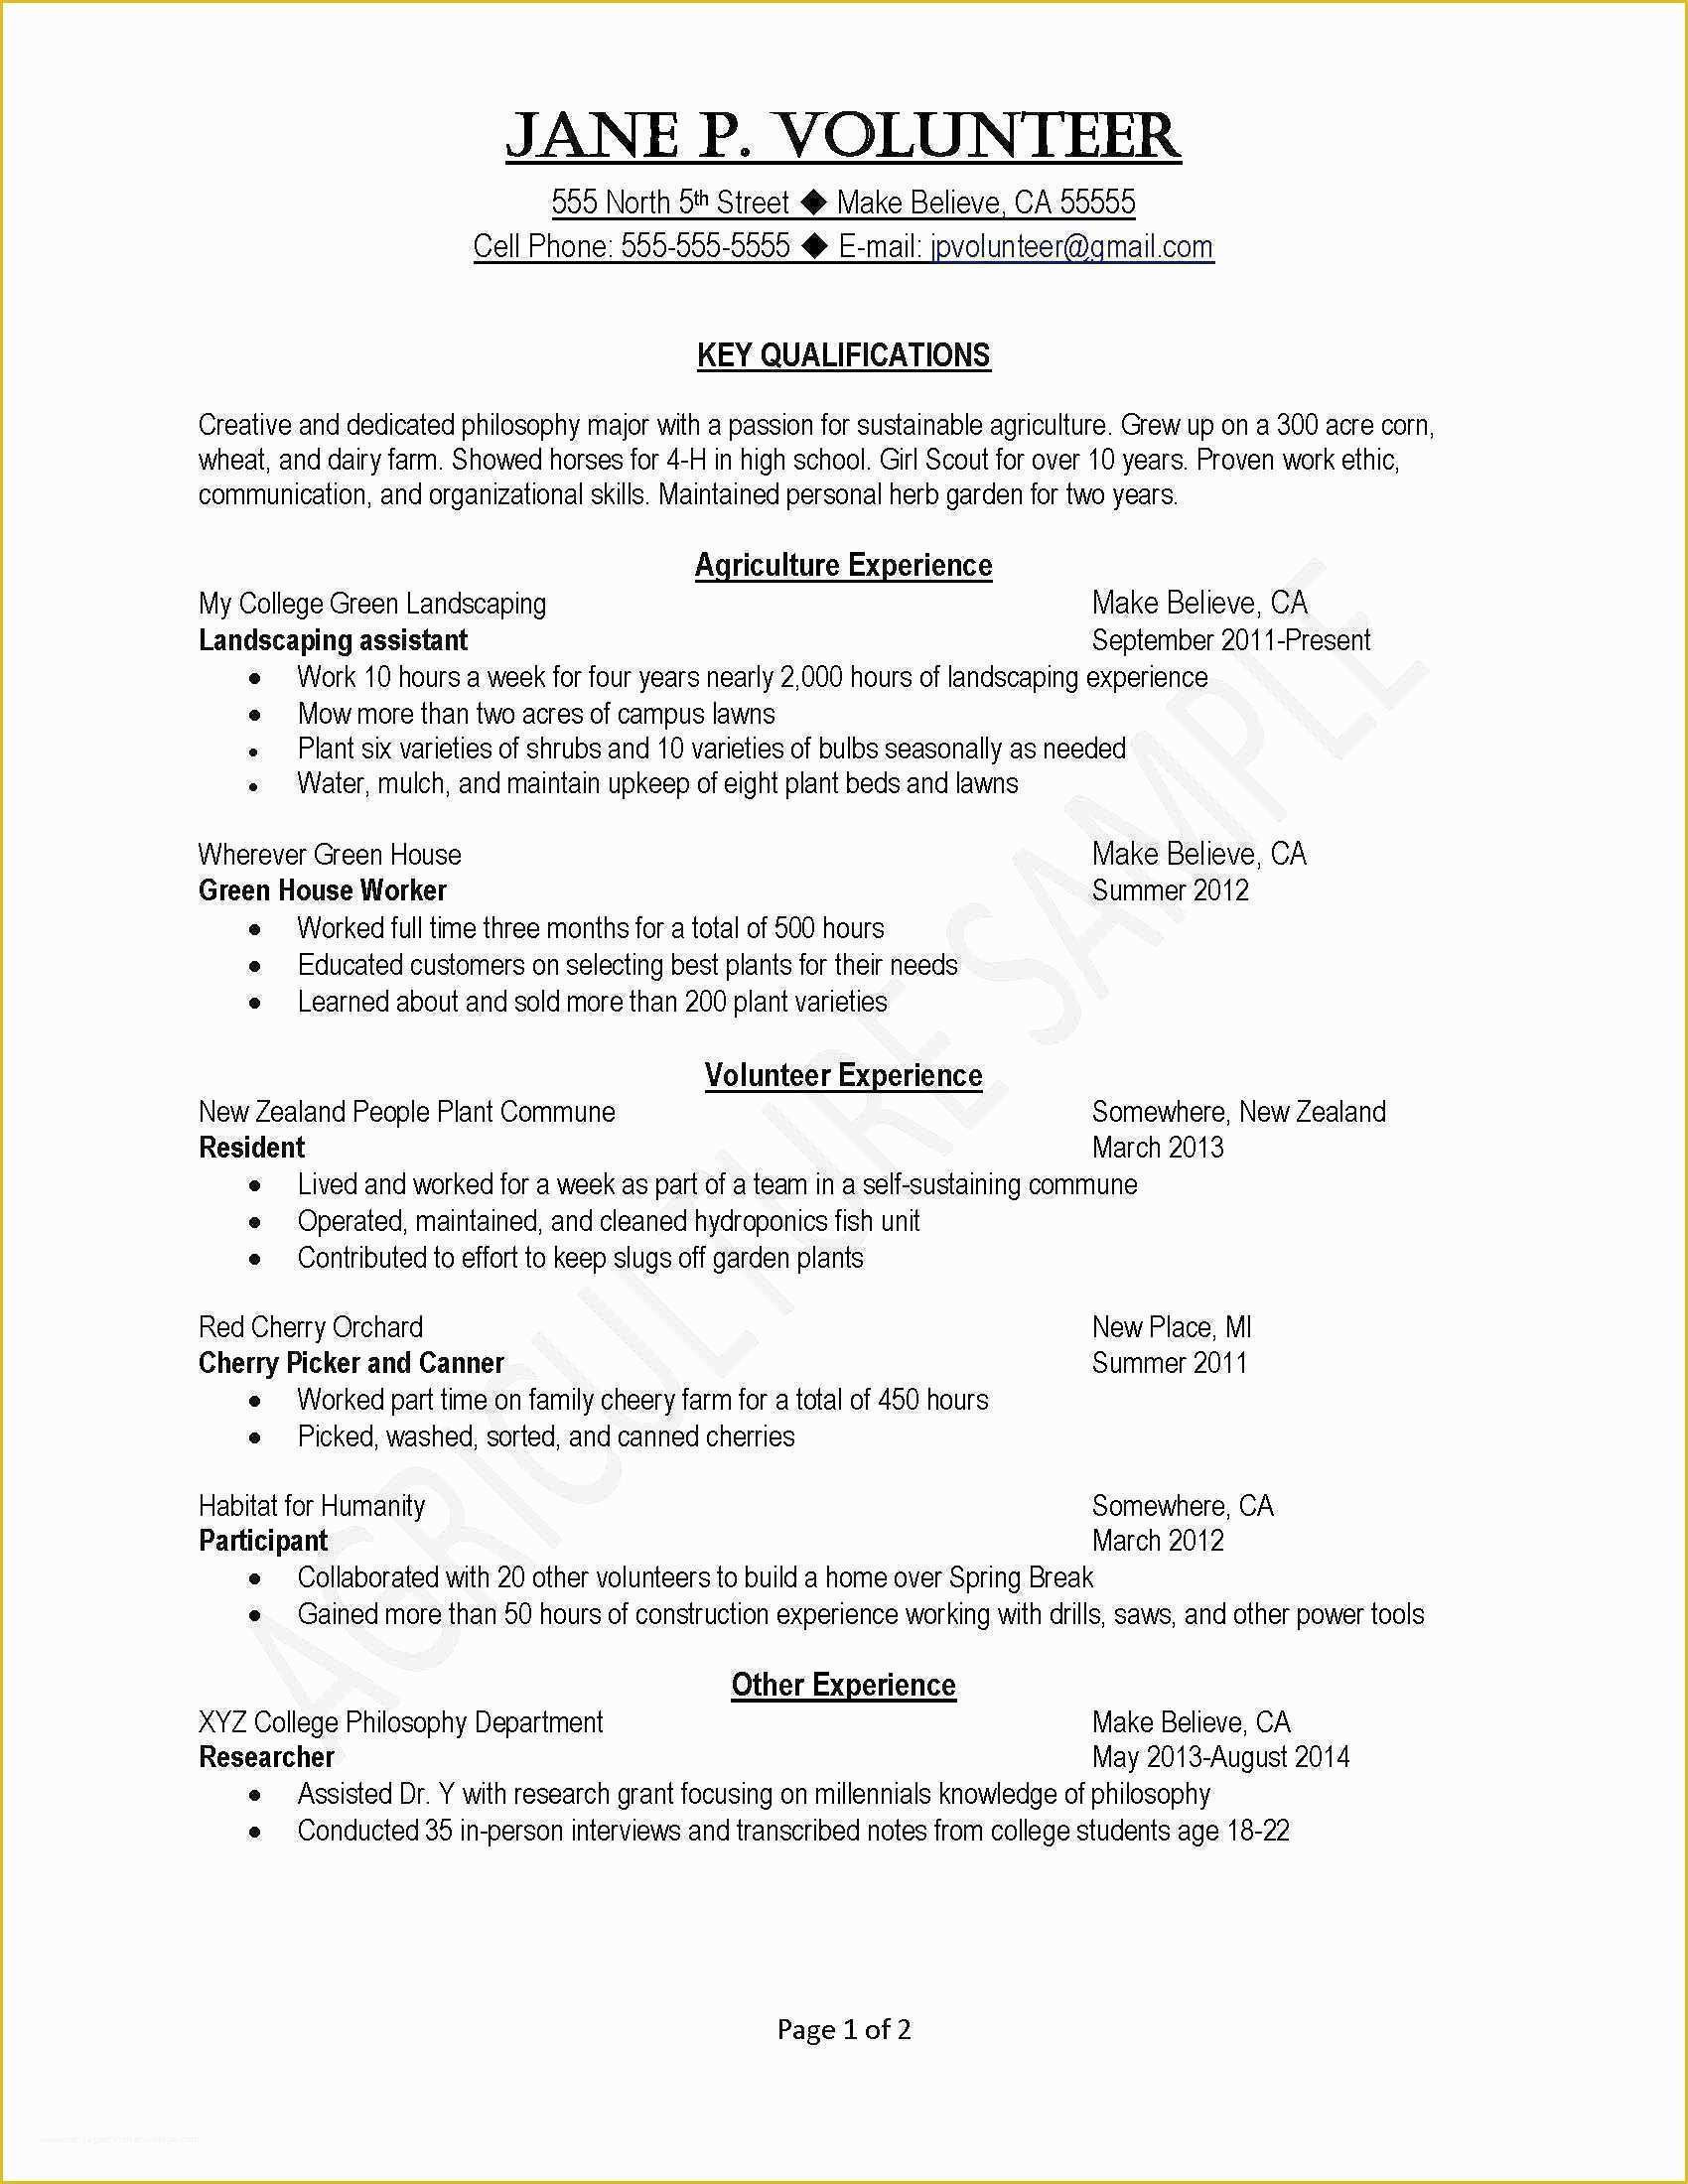 Oil and Gas Resume Samples Pdf Free Oil and Gas Resume Templates Oil and Gas Resumes